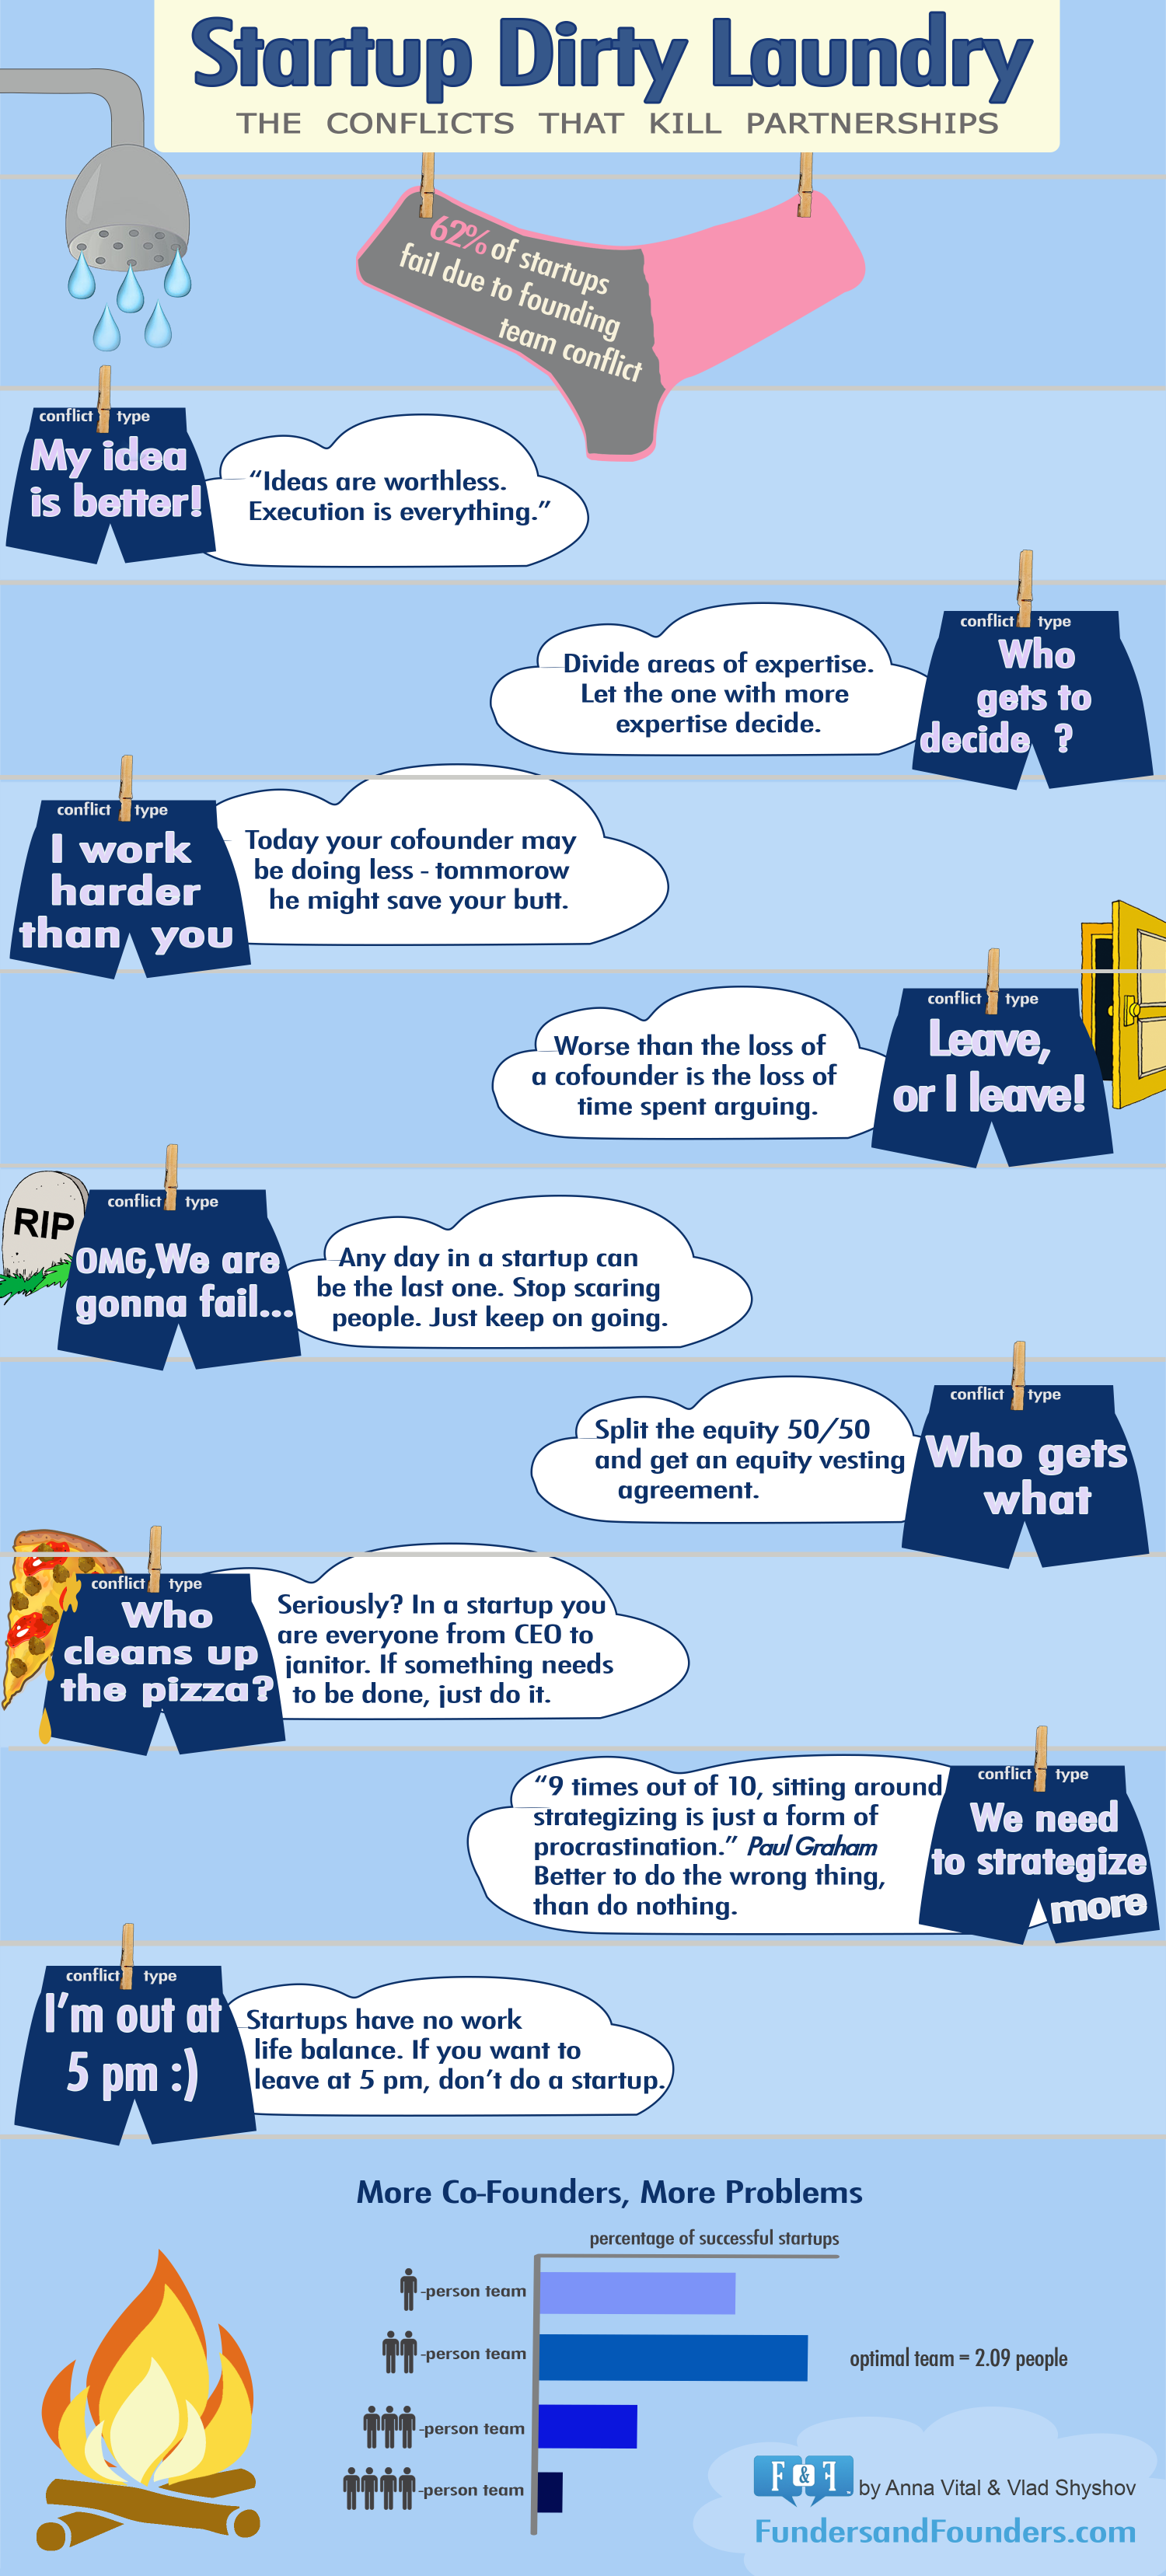 Startup Dirty Laundry: What Kills 62% of Startups Infographic